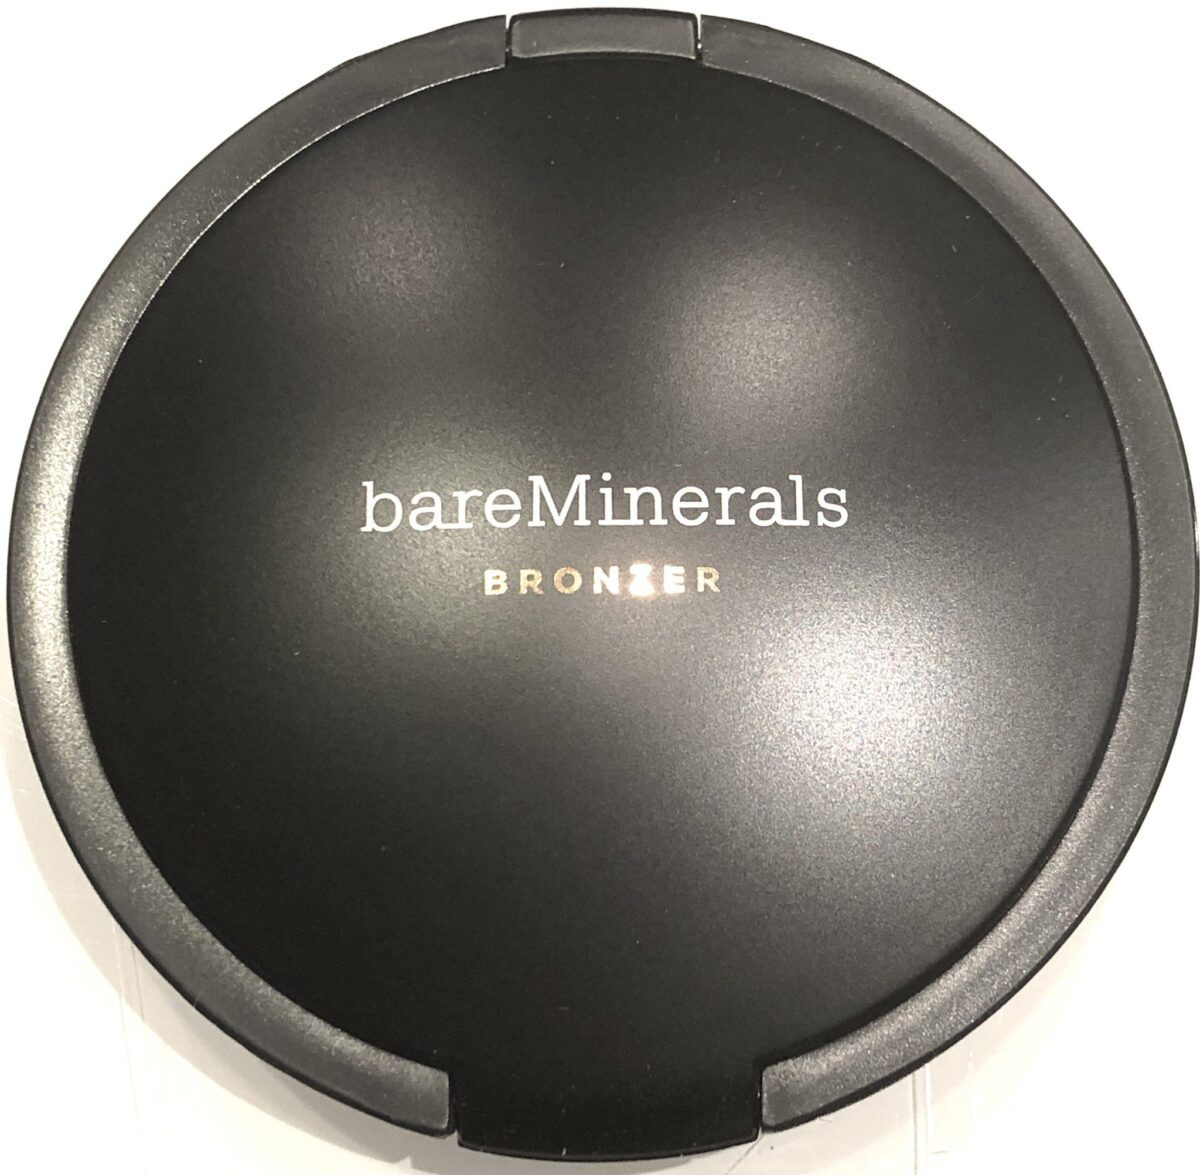 bAREMINERALS ENDLESS SUMMER BRONZER POWDER WARMTH COMPACT